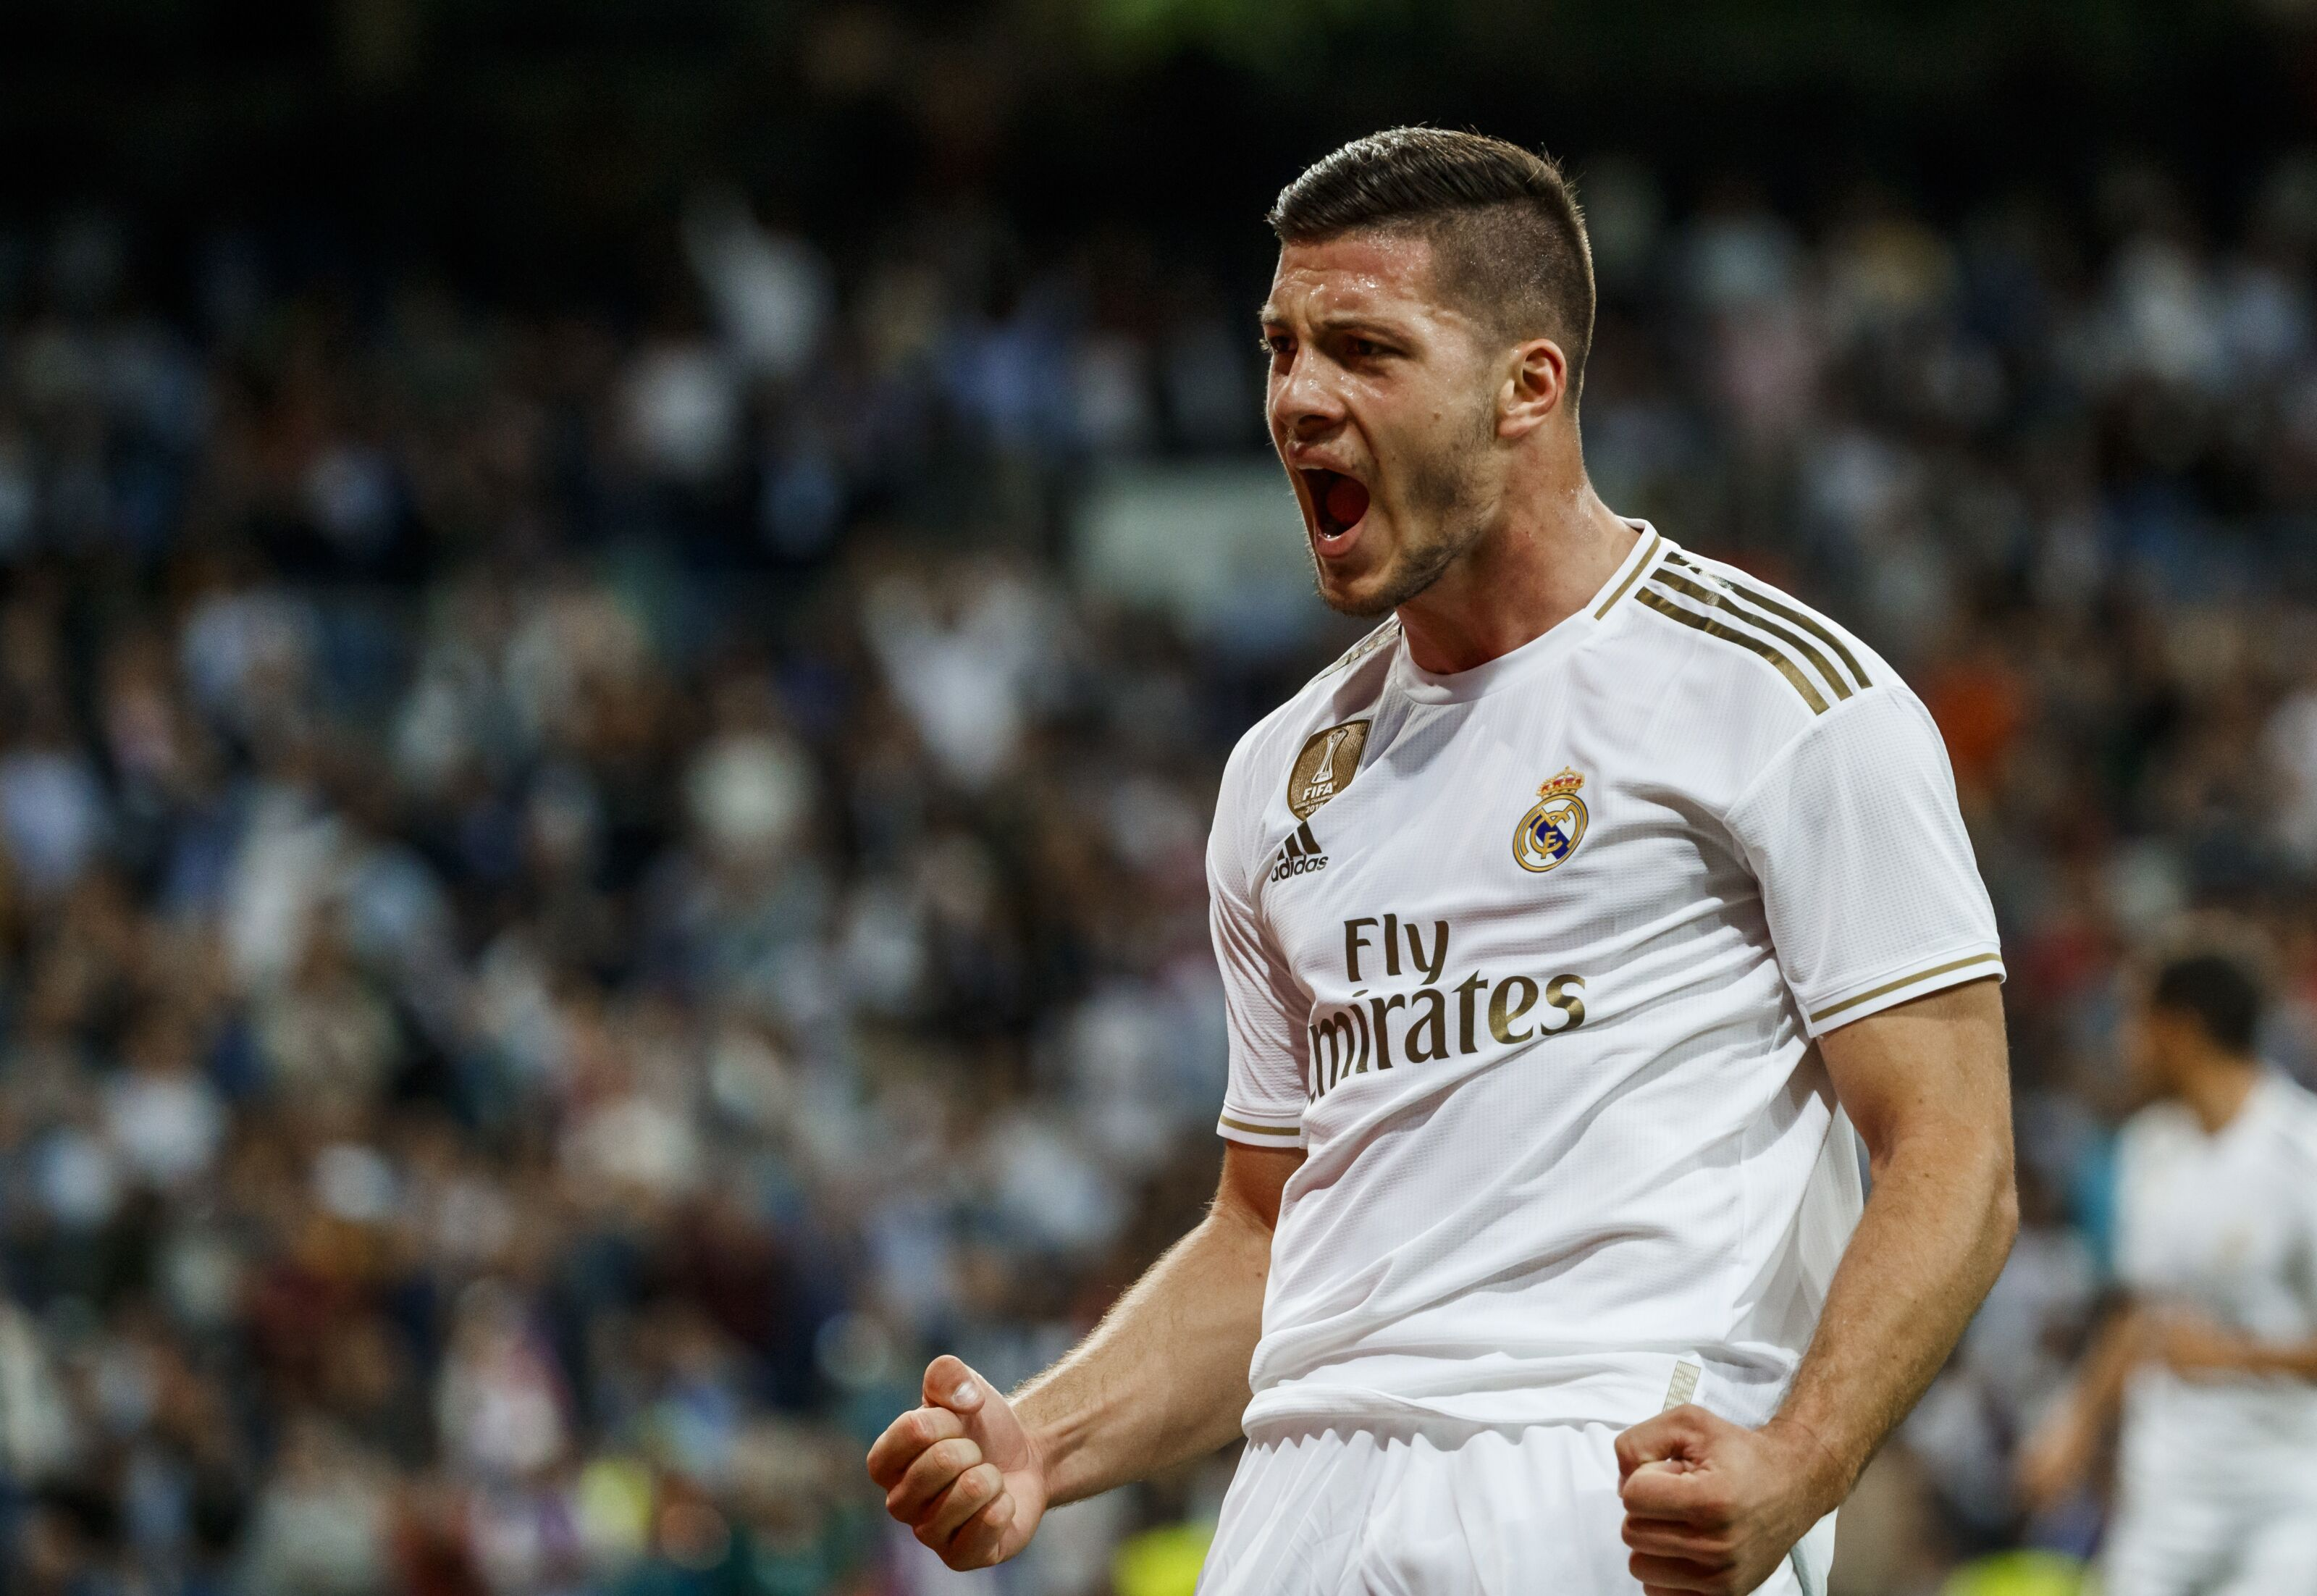 Real Madrid at Mallorca 2019 Score Prediction: Luka Jovic gets his goal